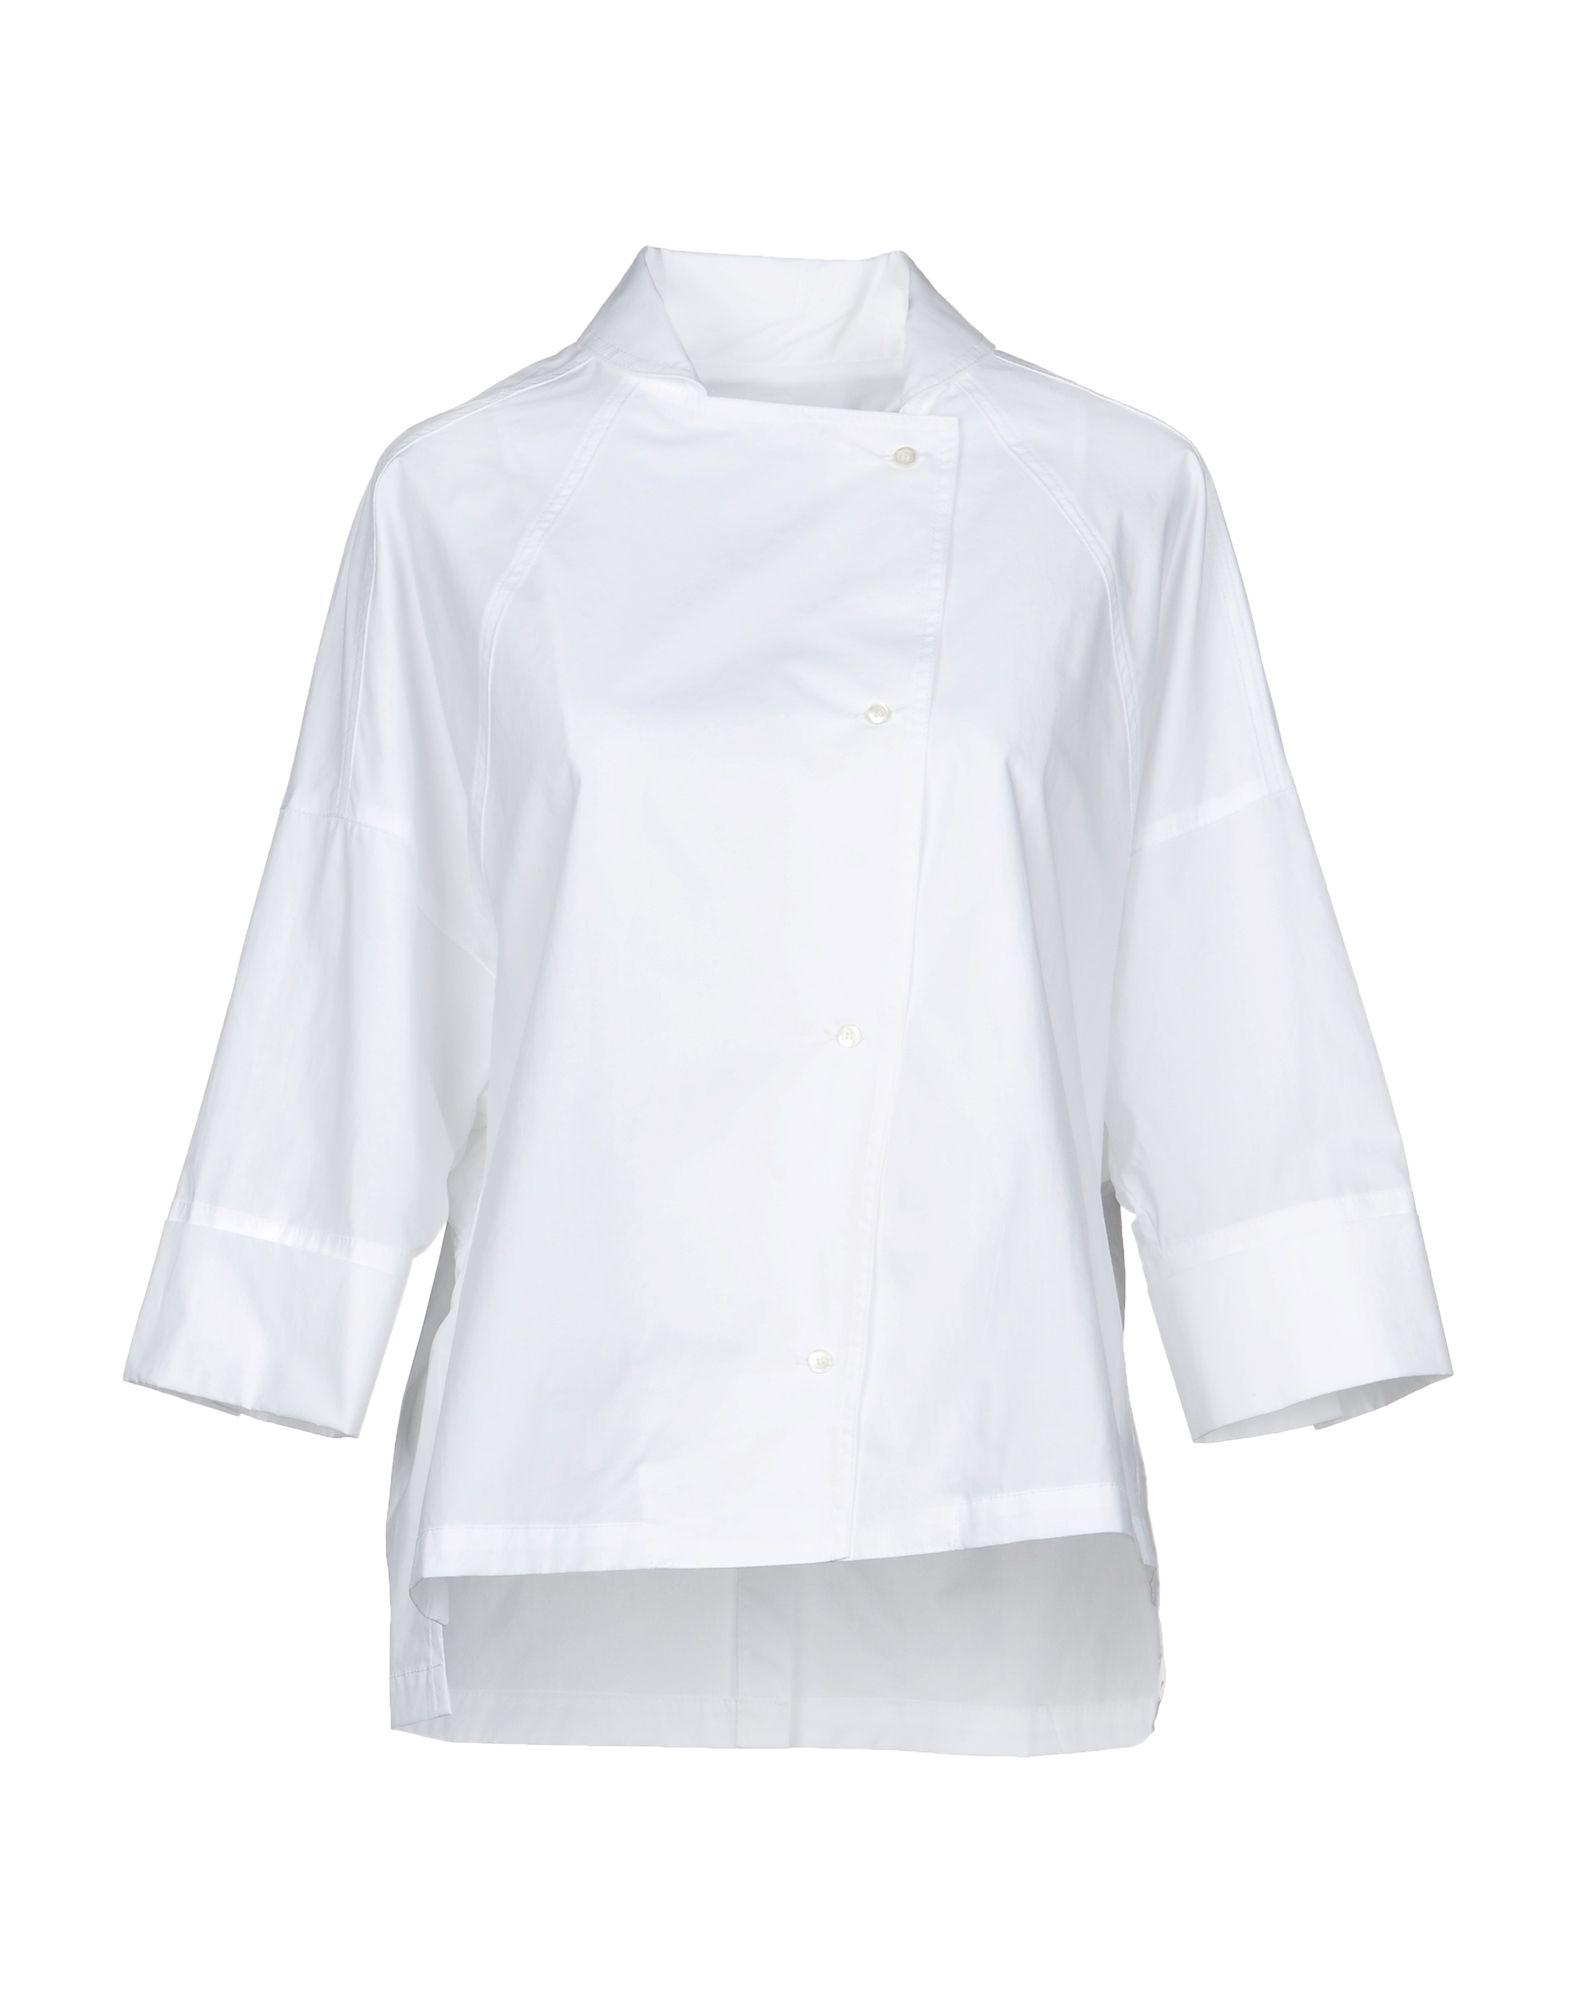 New Style SHIRTS - Shirts Collection Privée Buy Cheap Outlet Store Clearance Cheapest Price cWTWsBb